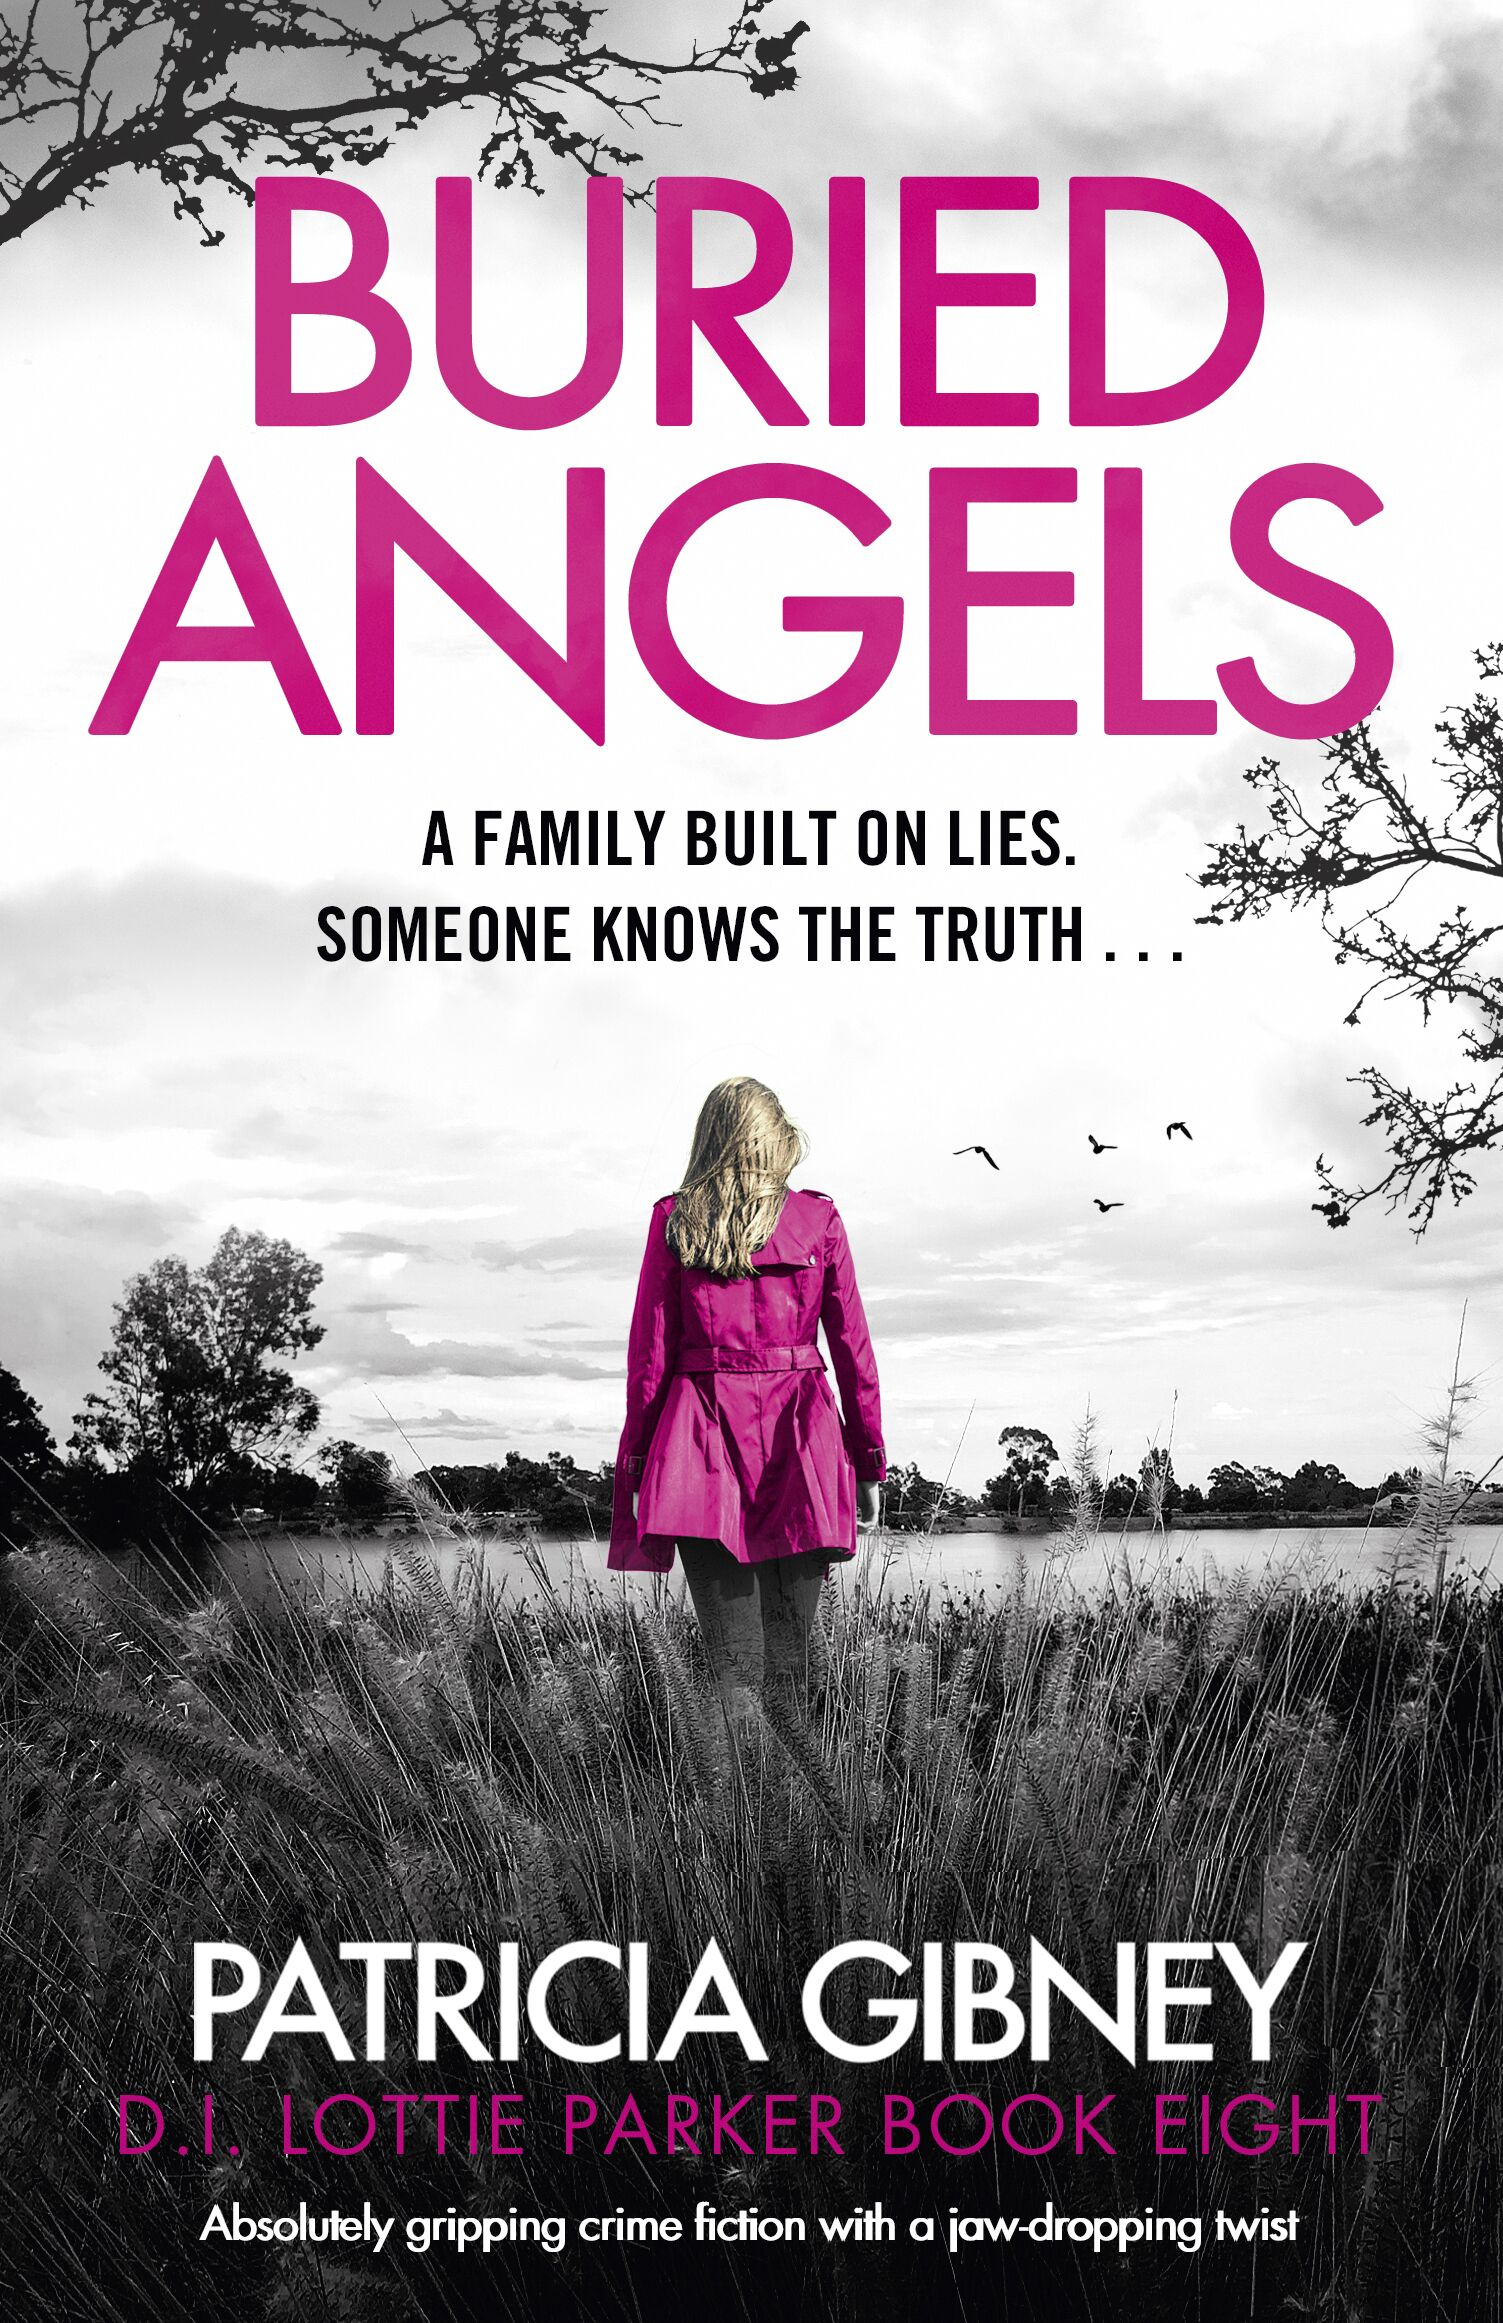 Buried Angels book cover